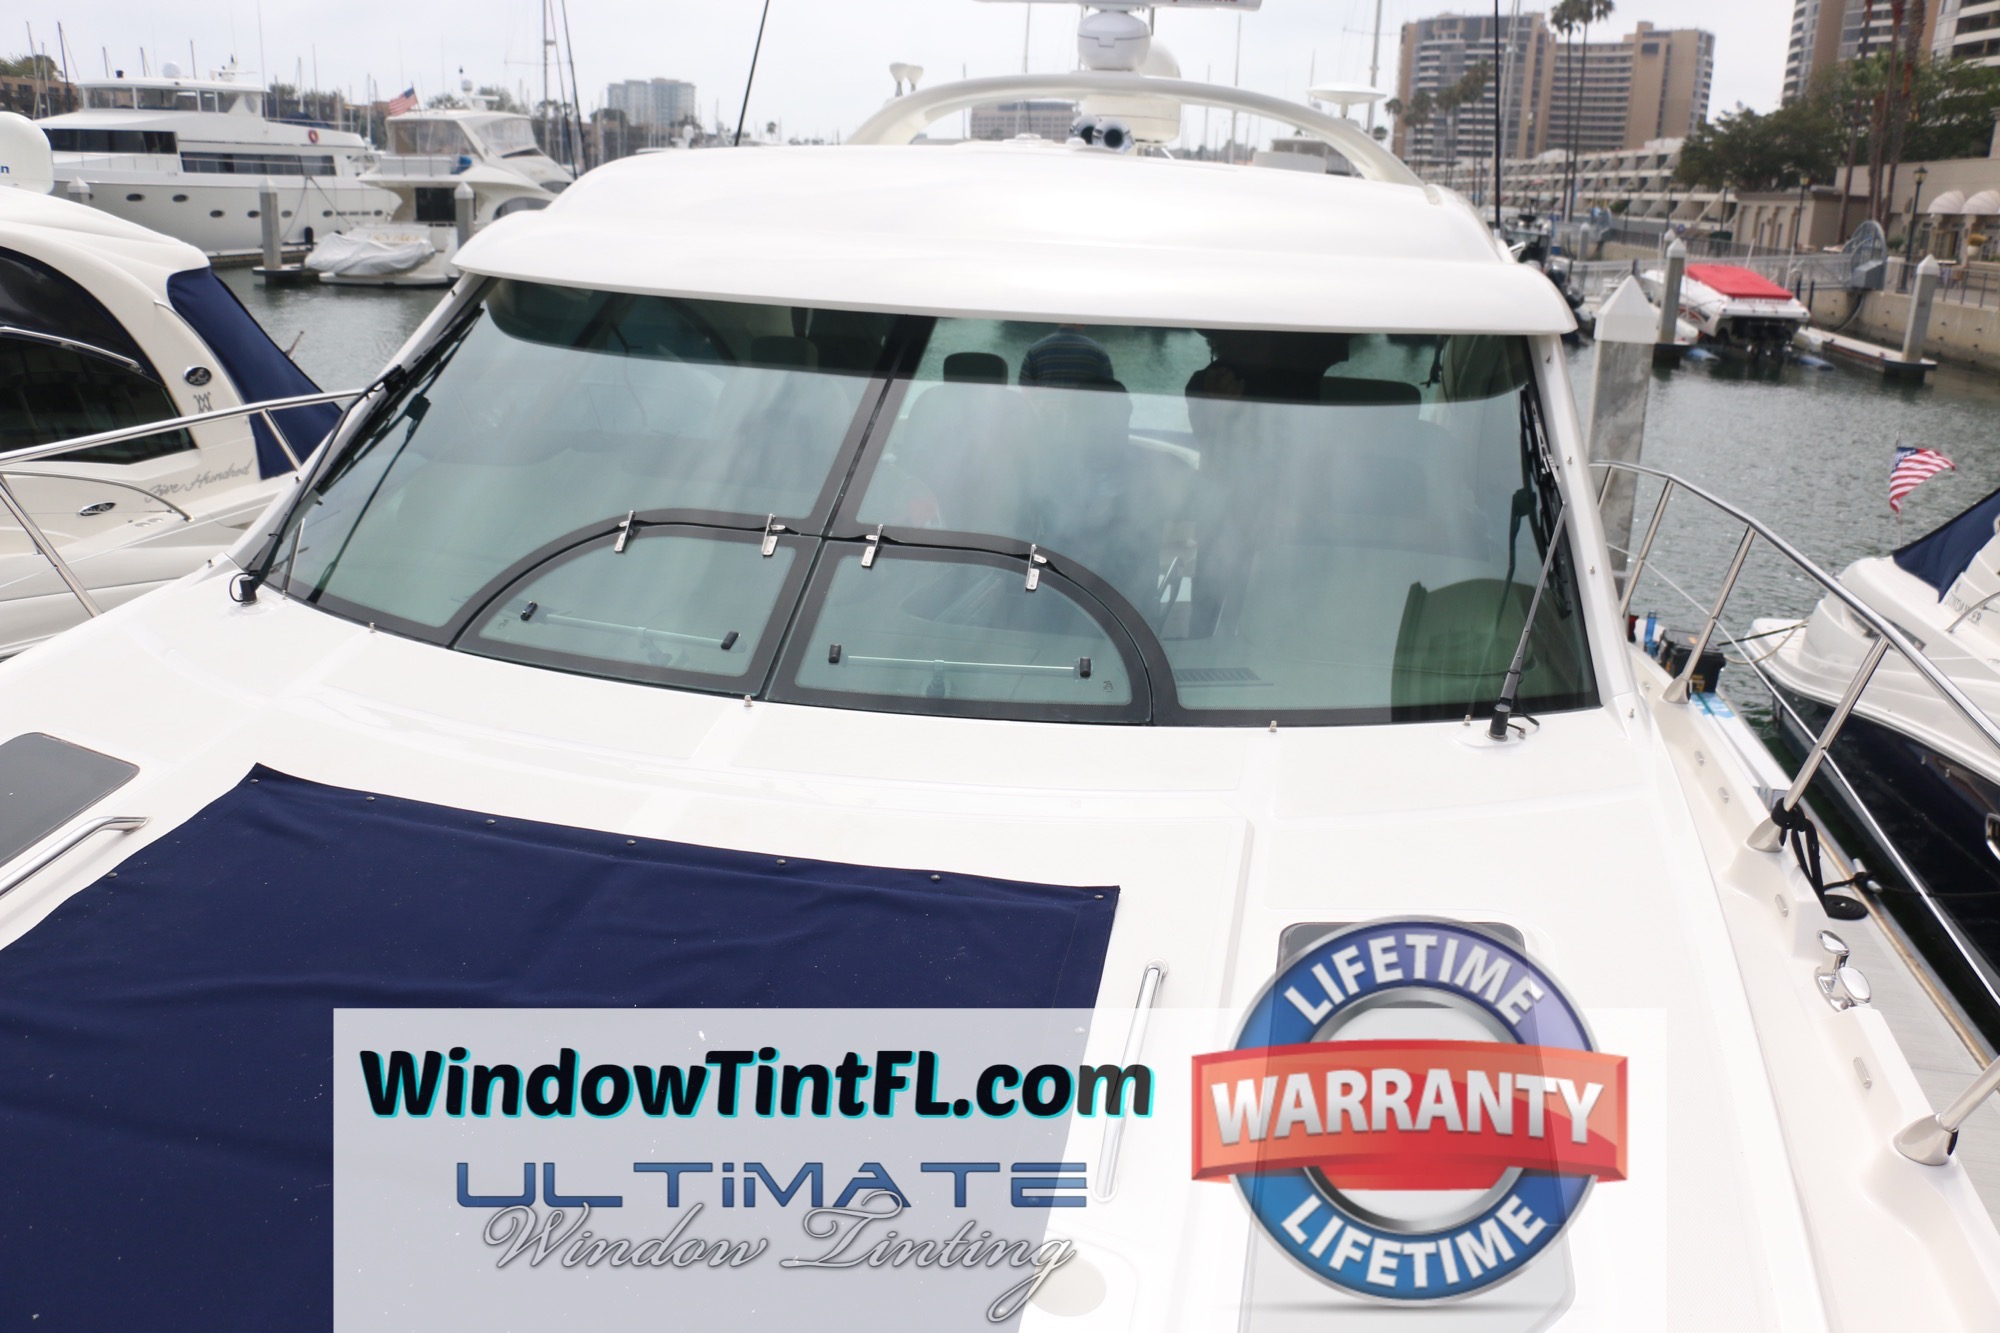 Boat Window Tint Sarasota Florida with Marine Solar Film